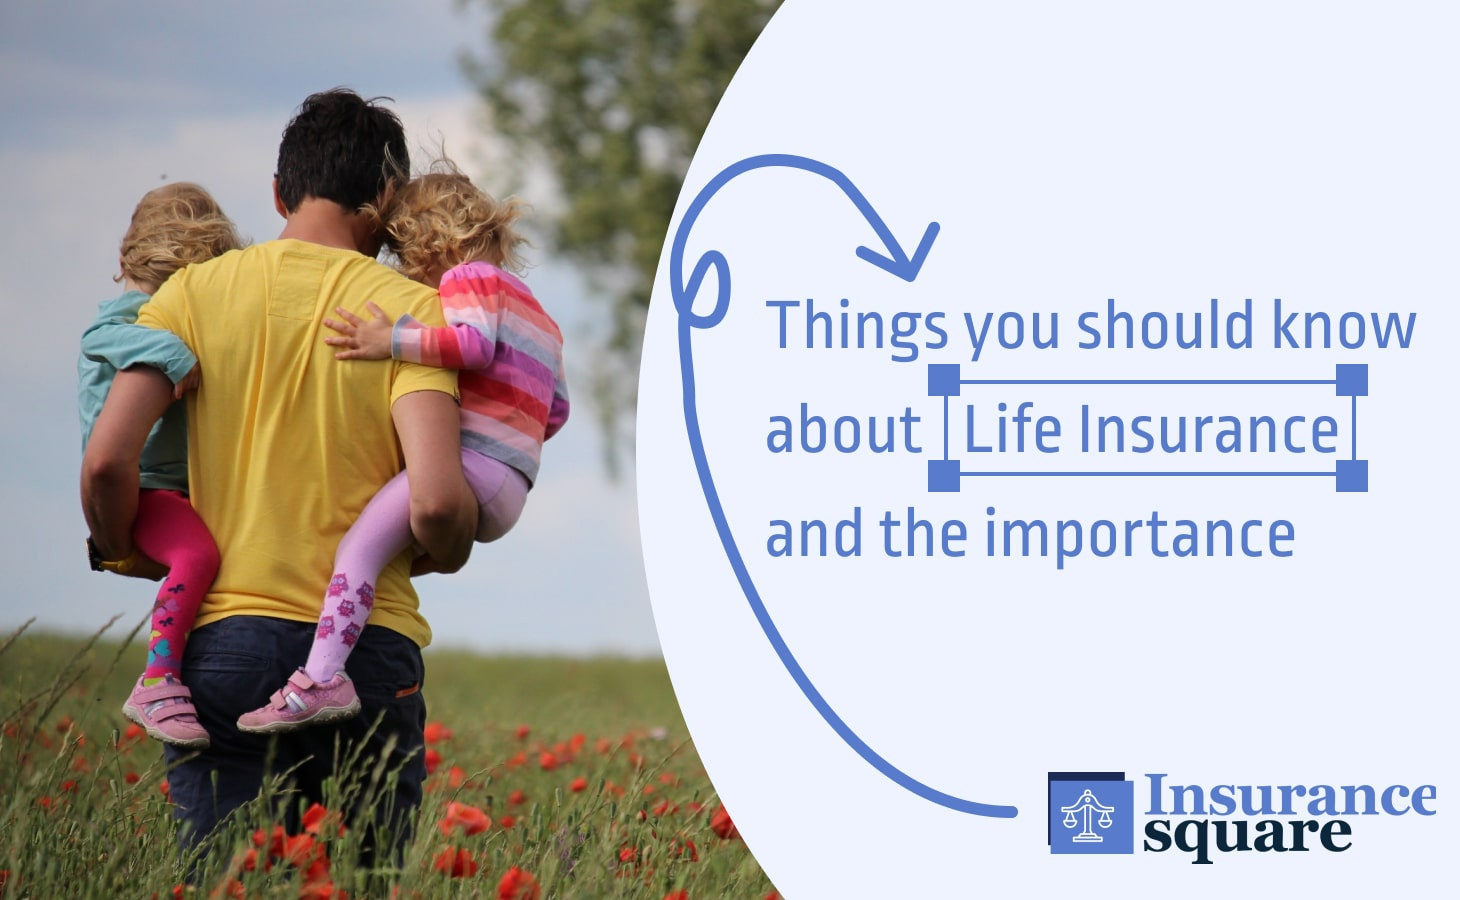 Things you should know about Life Insurance and the Importance- insurance square